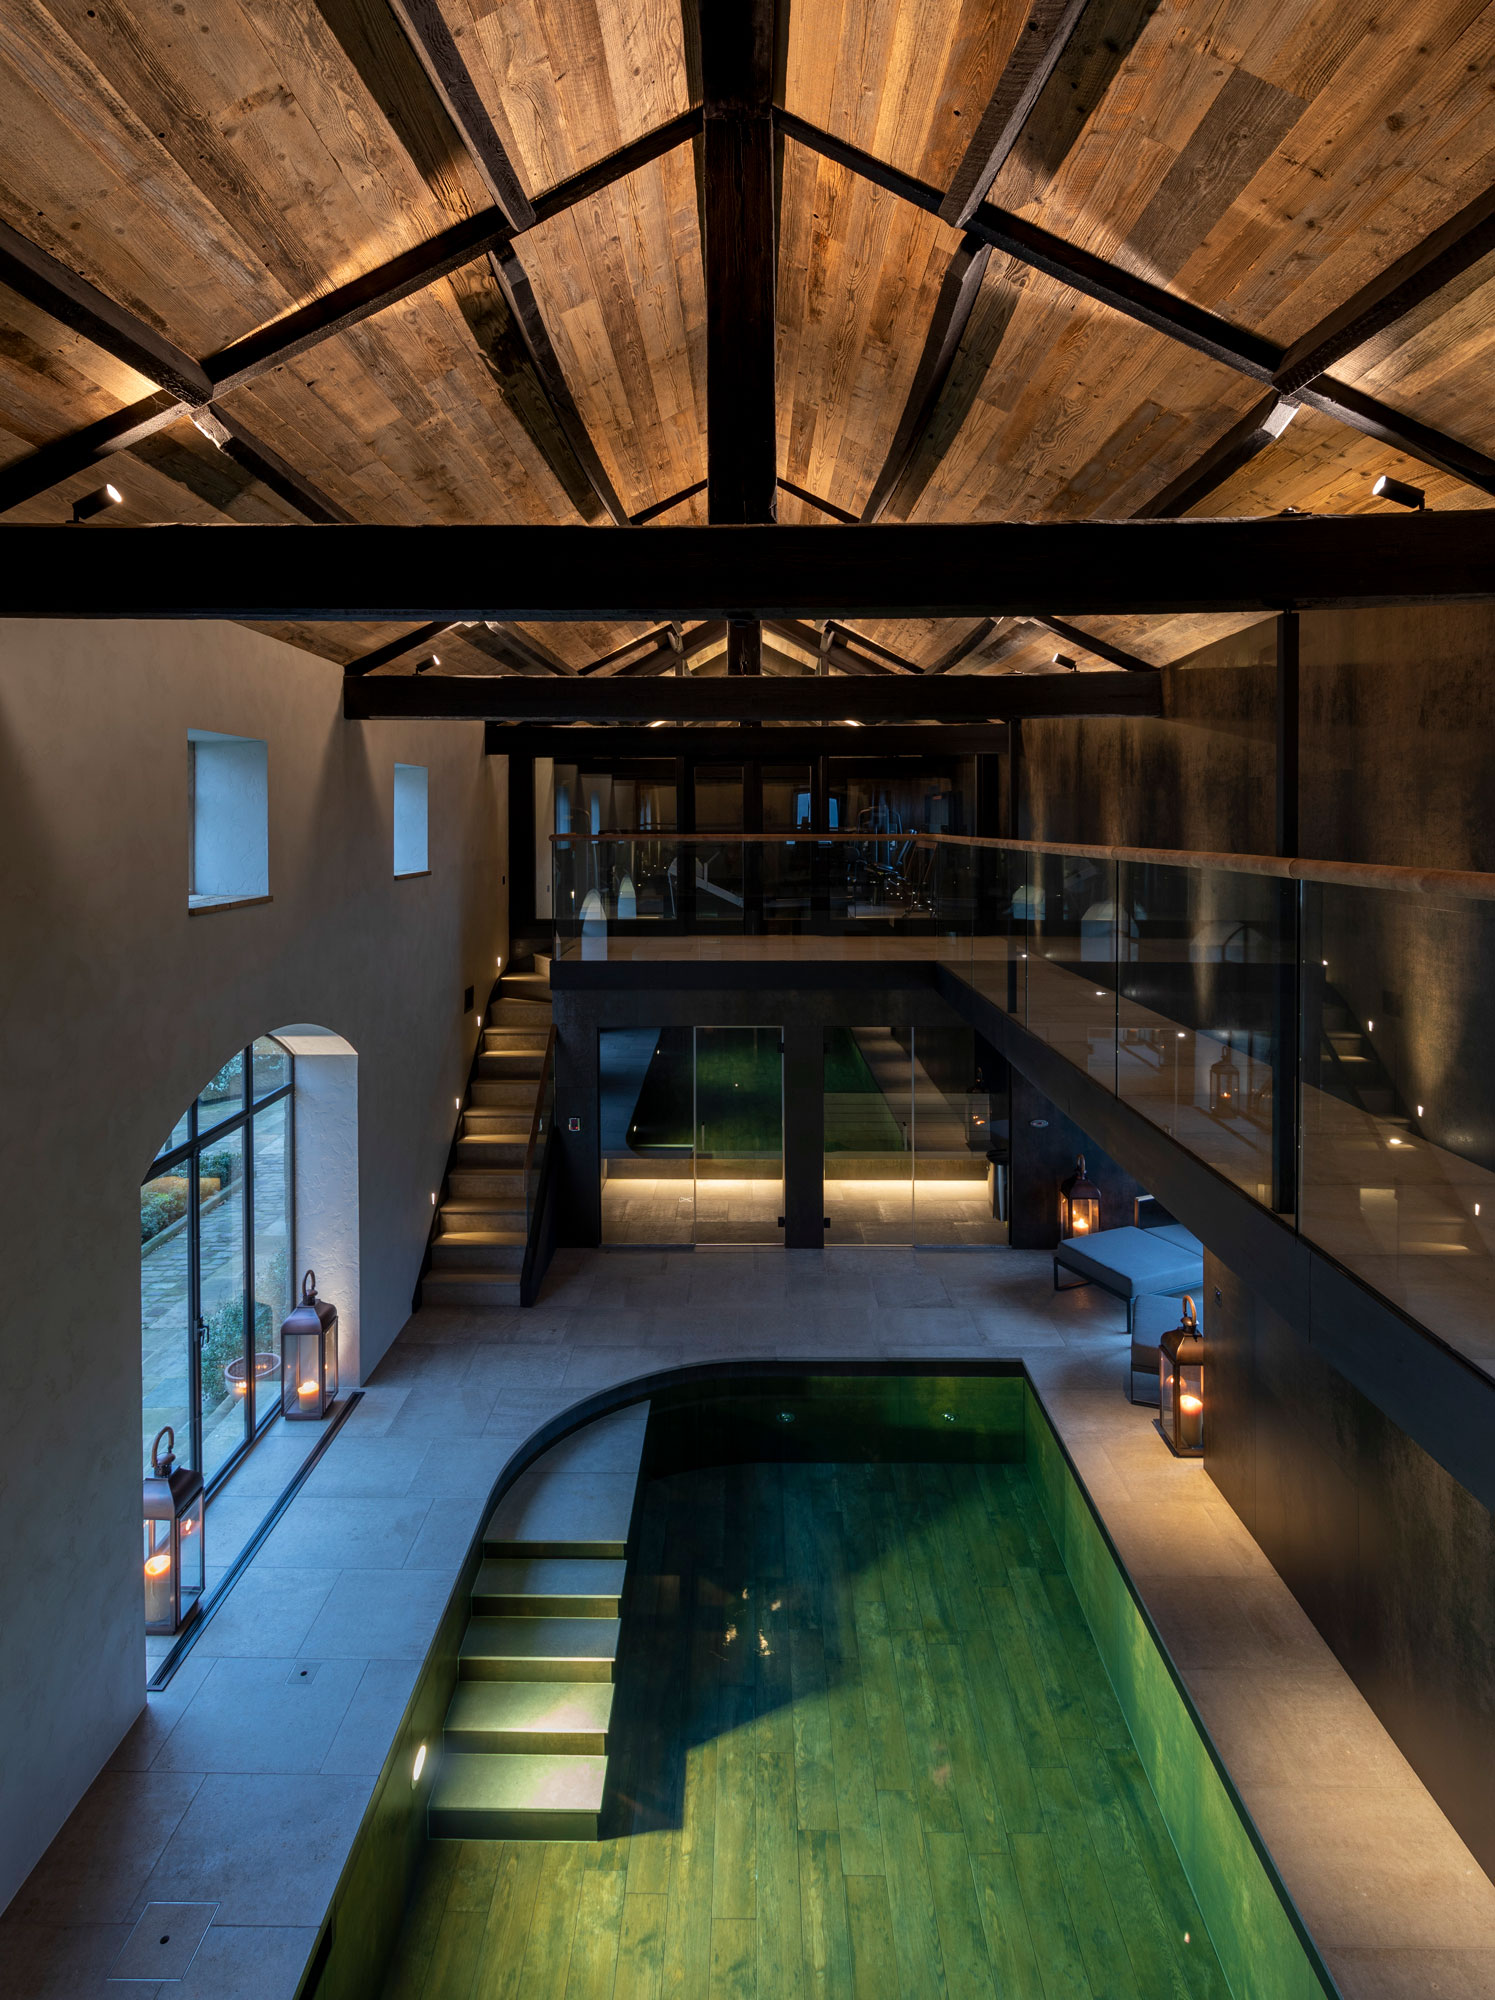 Swimming pool with wooden floor and exposed RSJ beams above